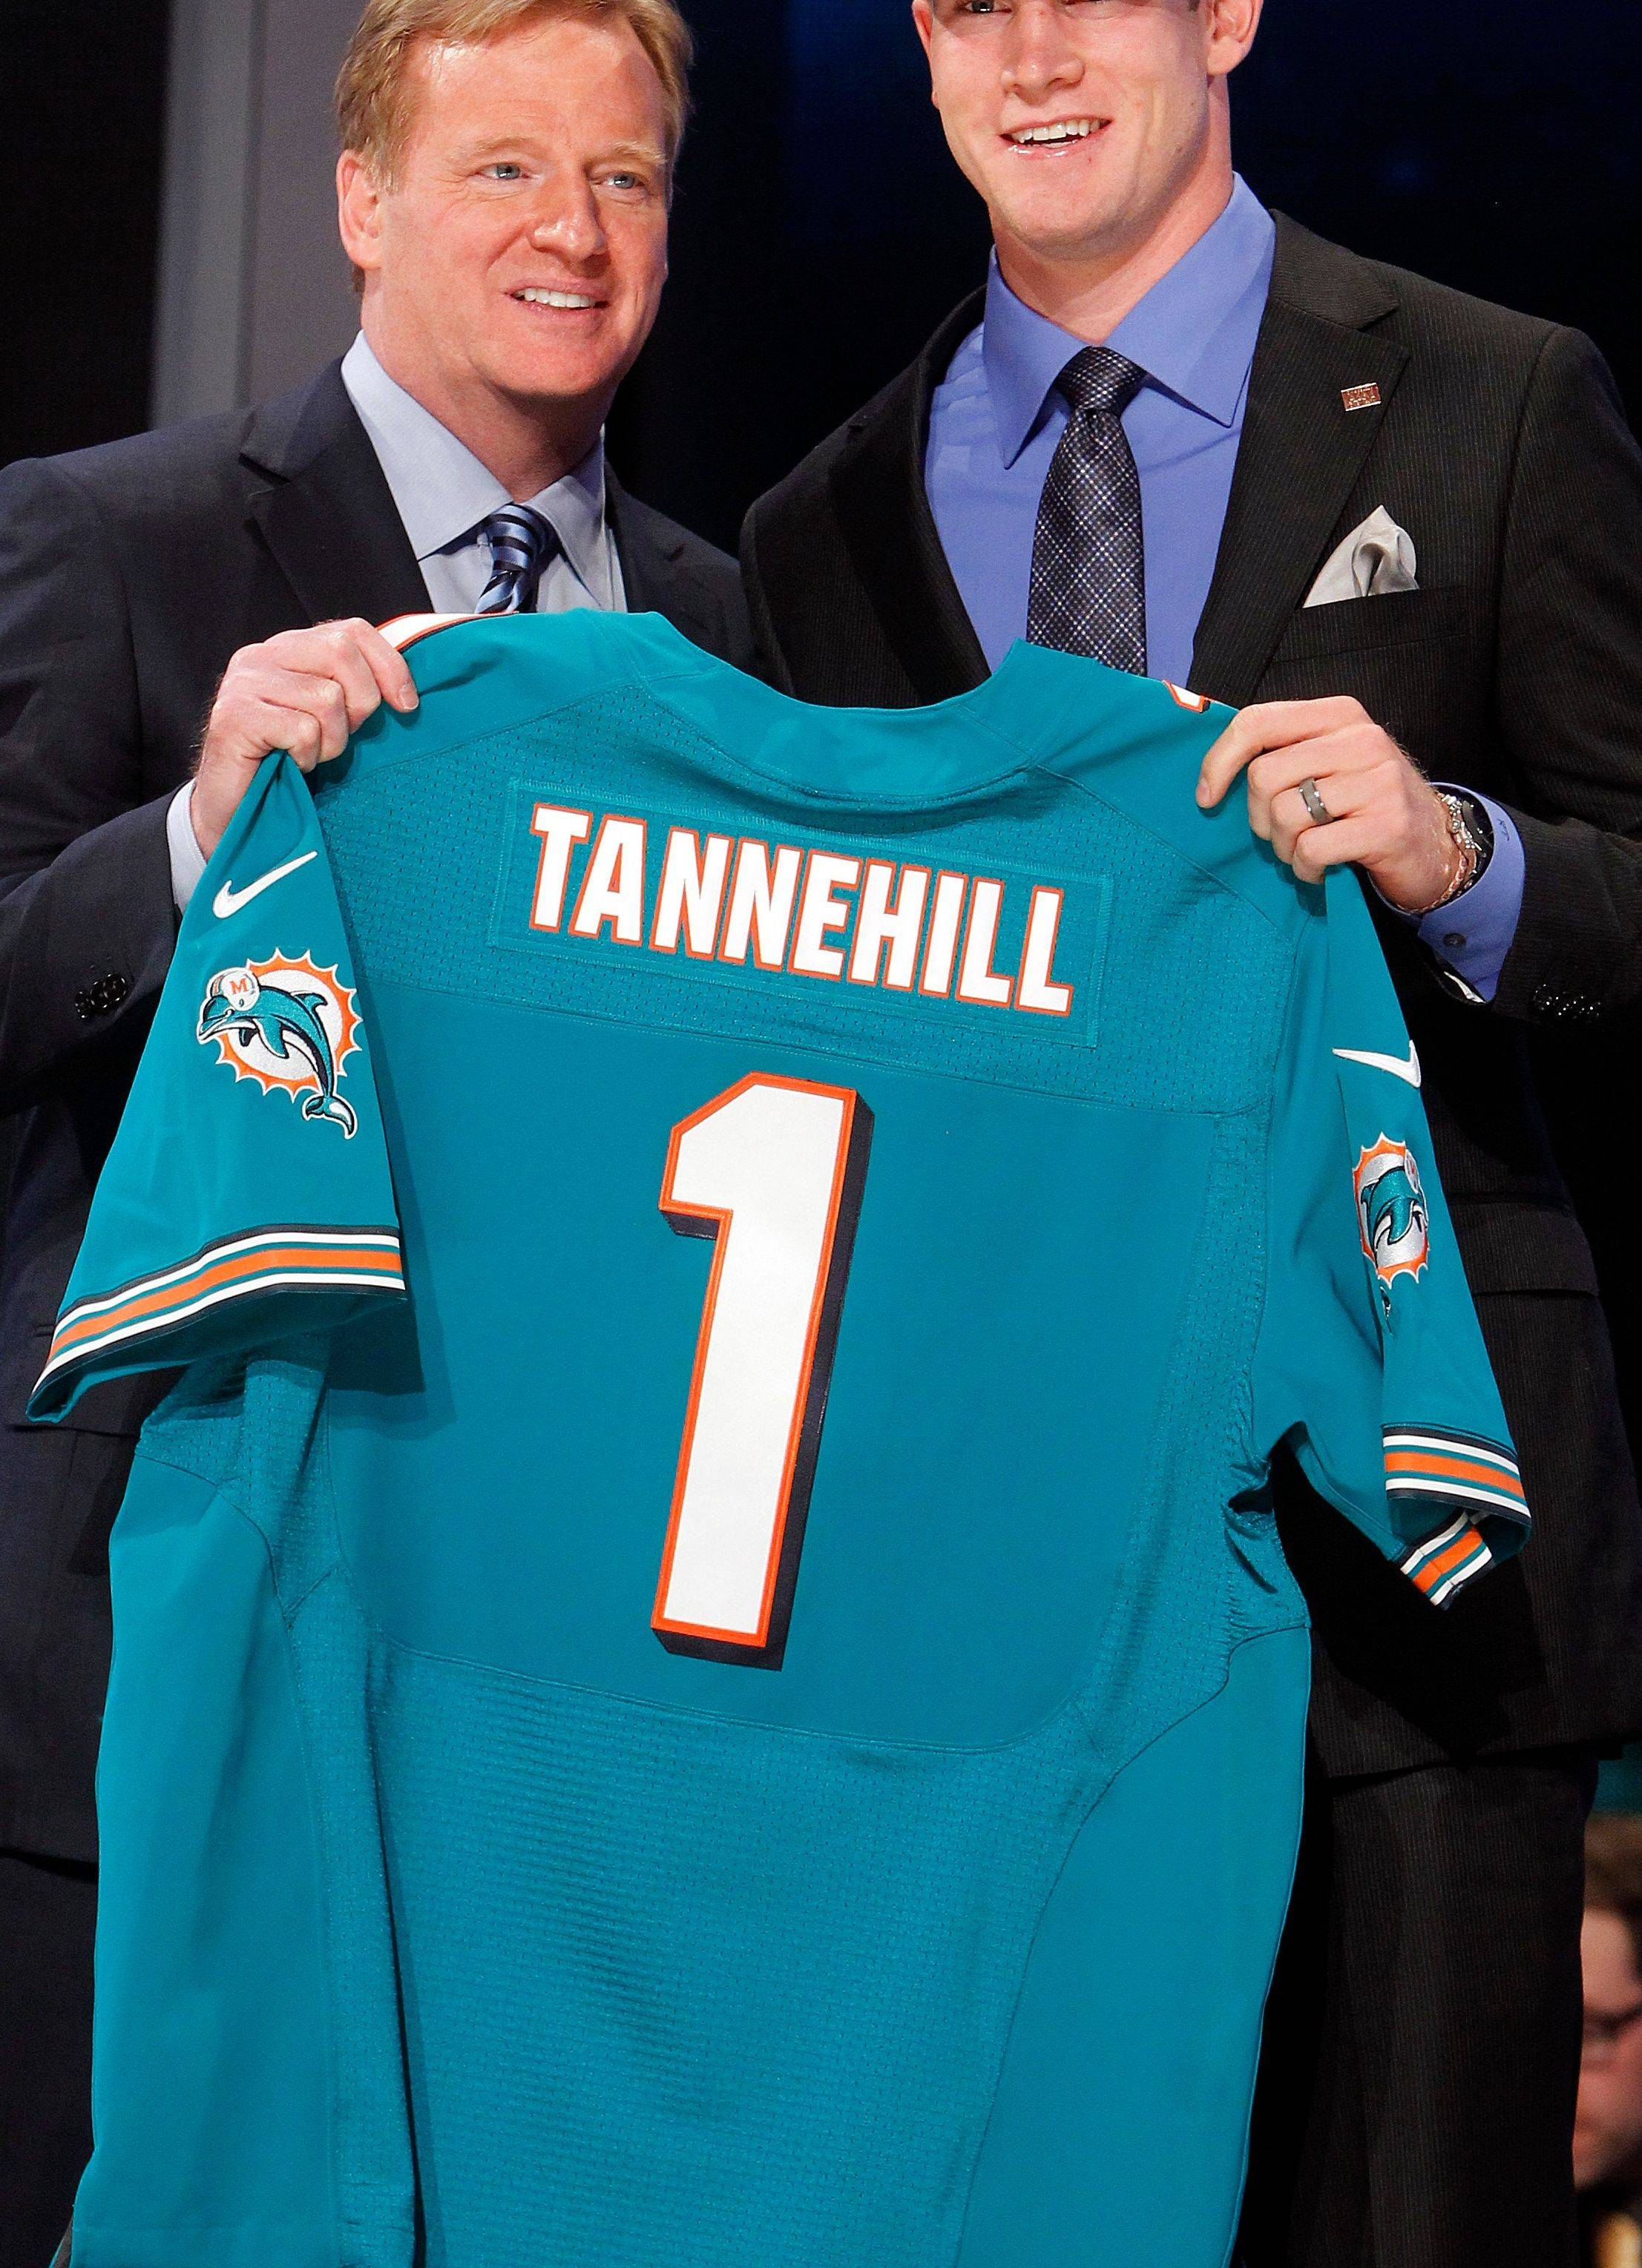 Texas A&M quarterback Ryan Tannehill with NFL Commissioner Roger Goodell Thursday after being selected as the eighth pick overall by the Miami Dolphins in the first round of the NFL football draft at Radio City Music Hall.